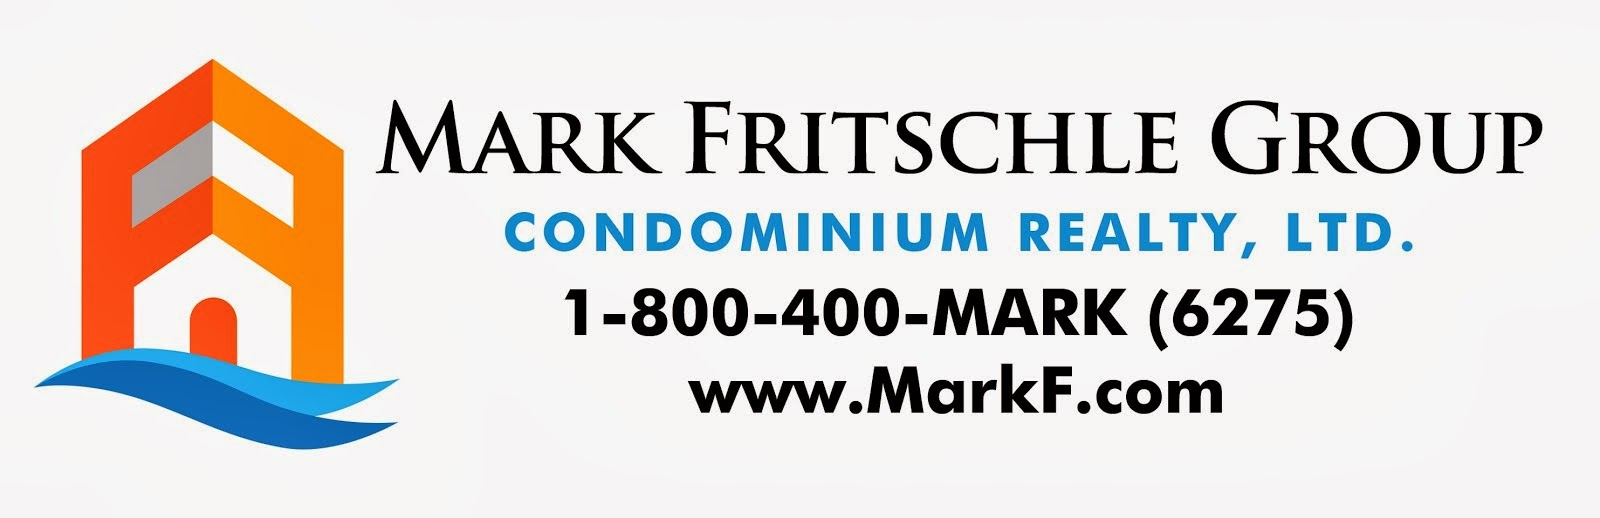 Mark Fritschle Group